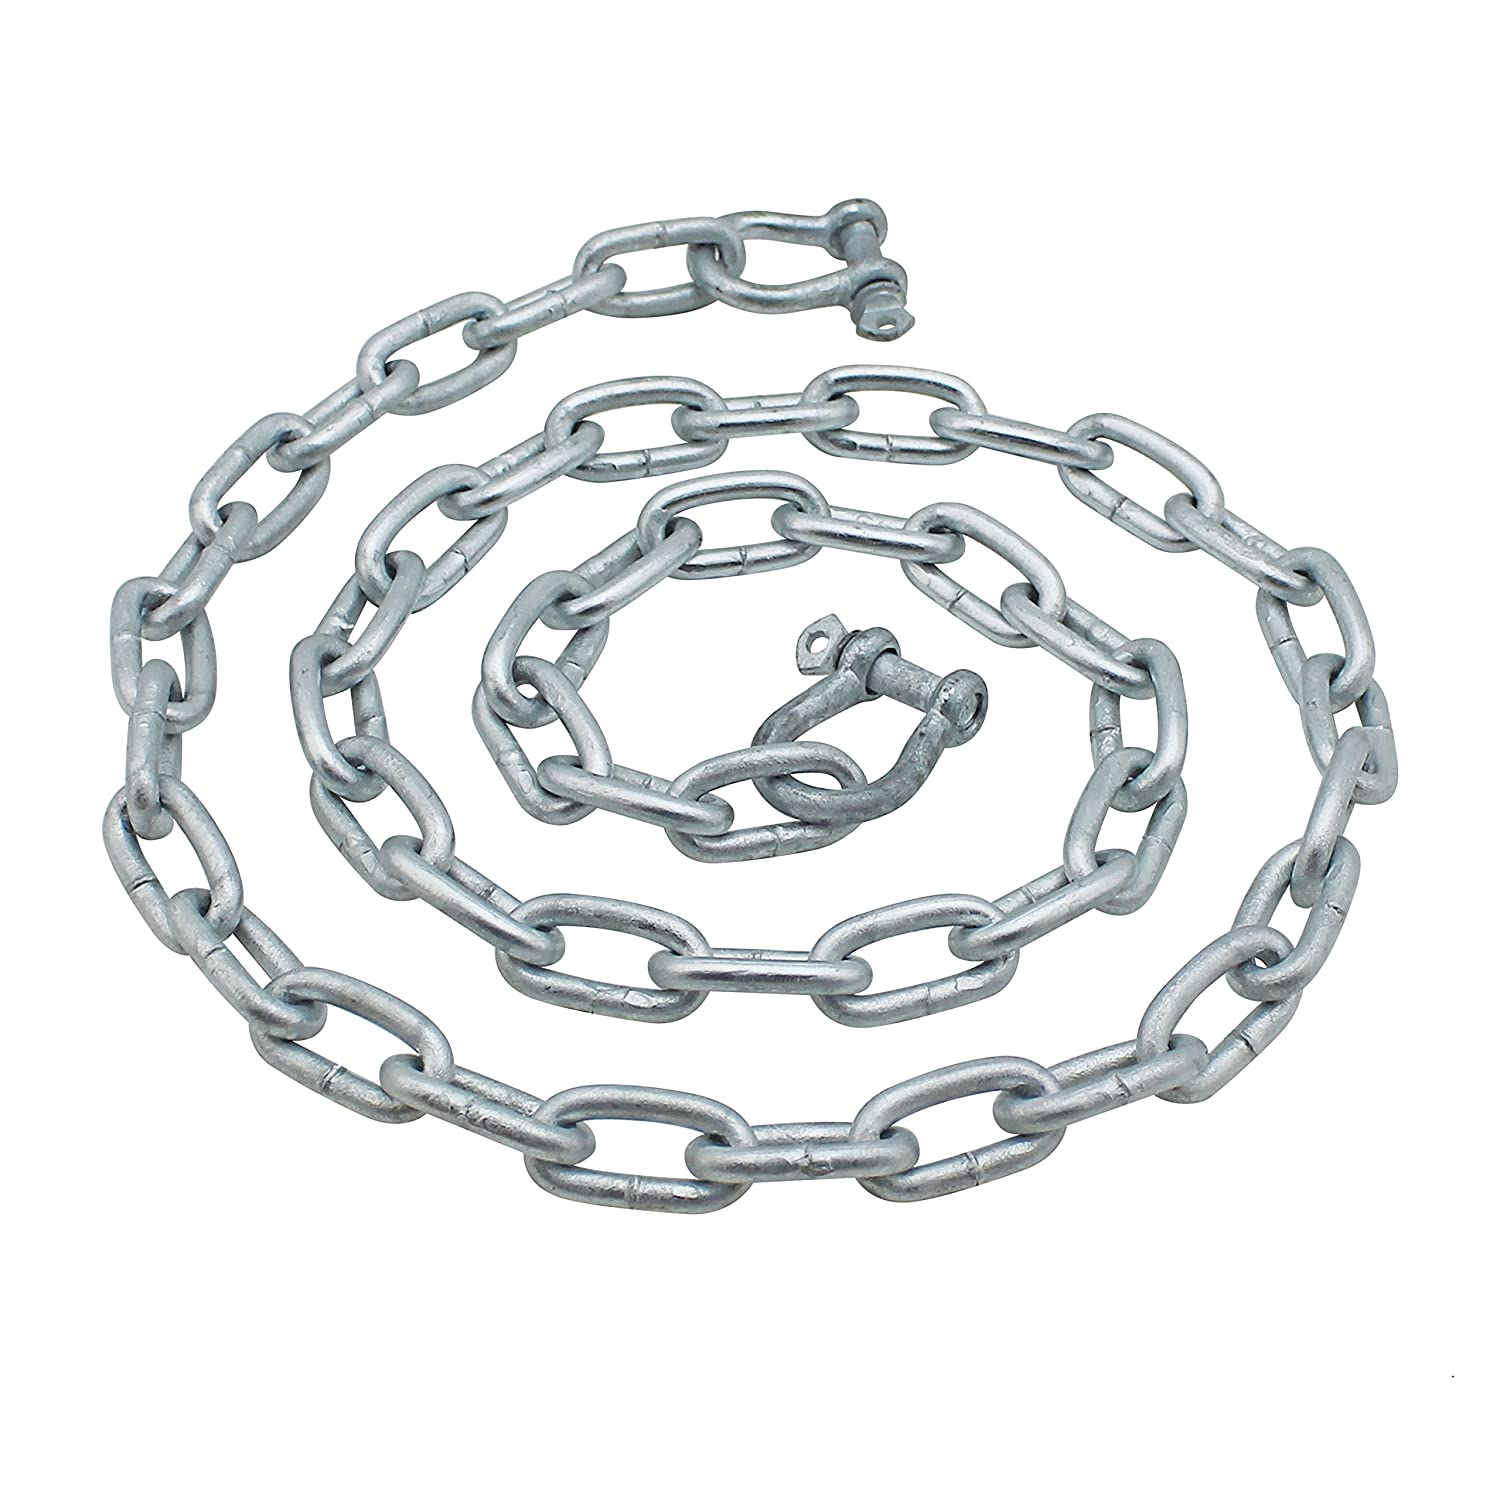 Extreme Max 3006.6572 BoatTector Anchor Chain 5//16 x 5 Galvanized Steel with 3//8 Shackles